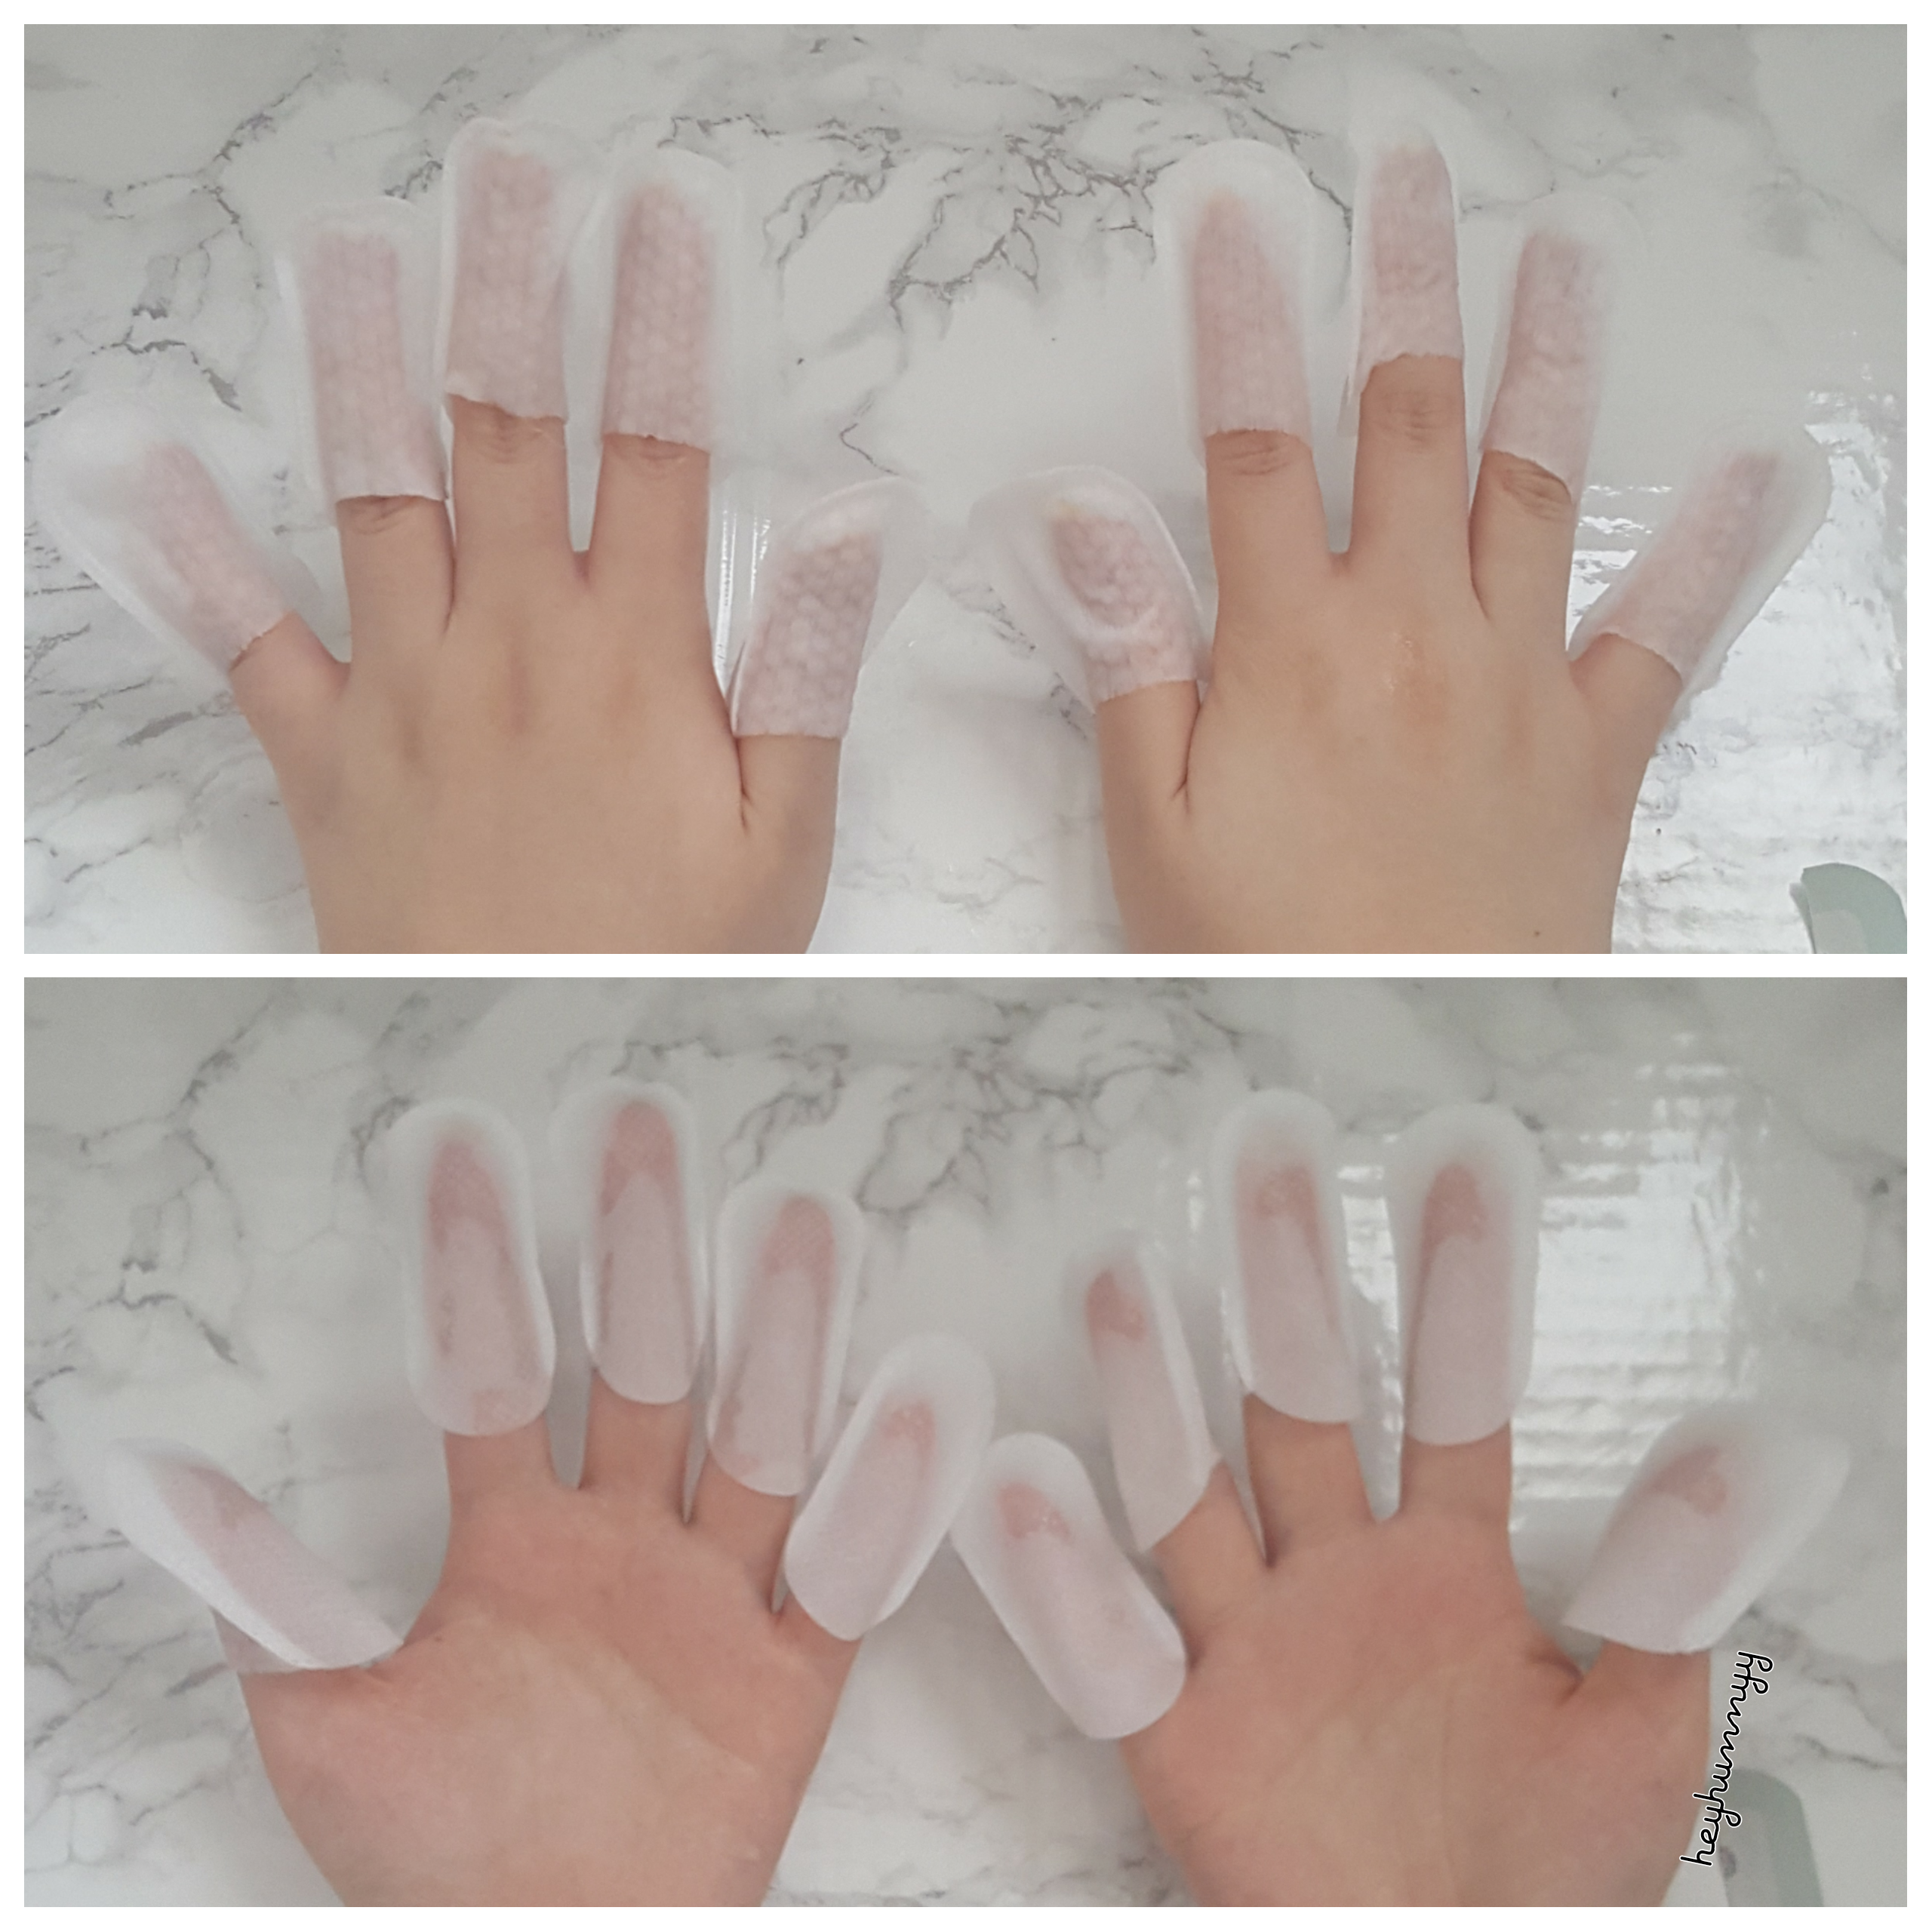 ::REVIEW:: THE FACE SHOP Paraffin Nutrition Nail Pack